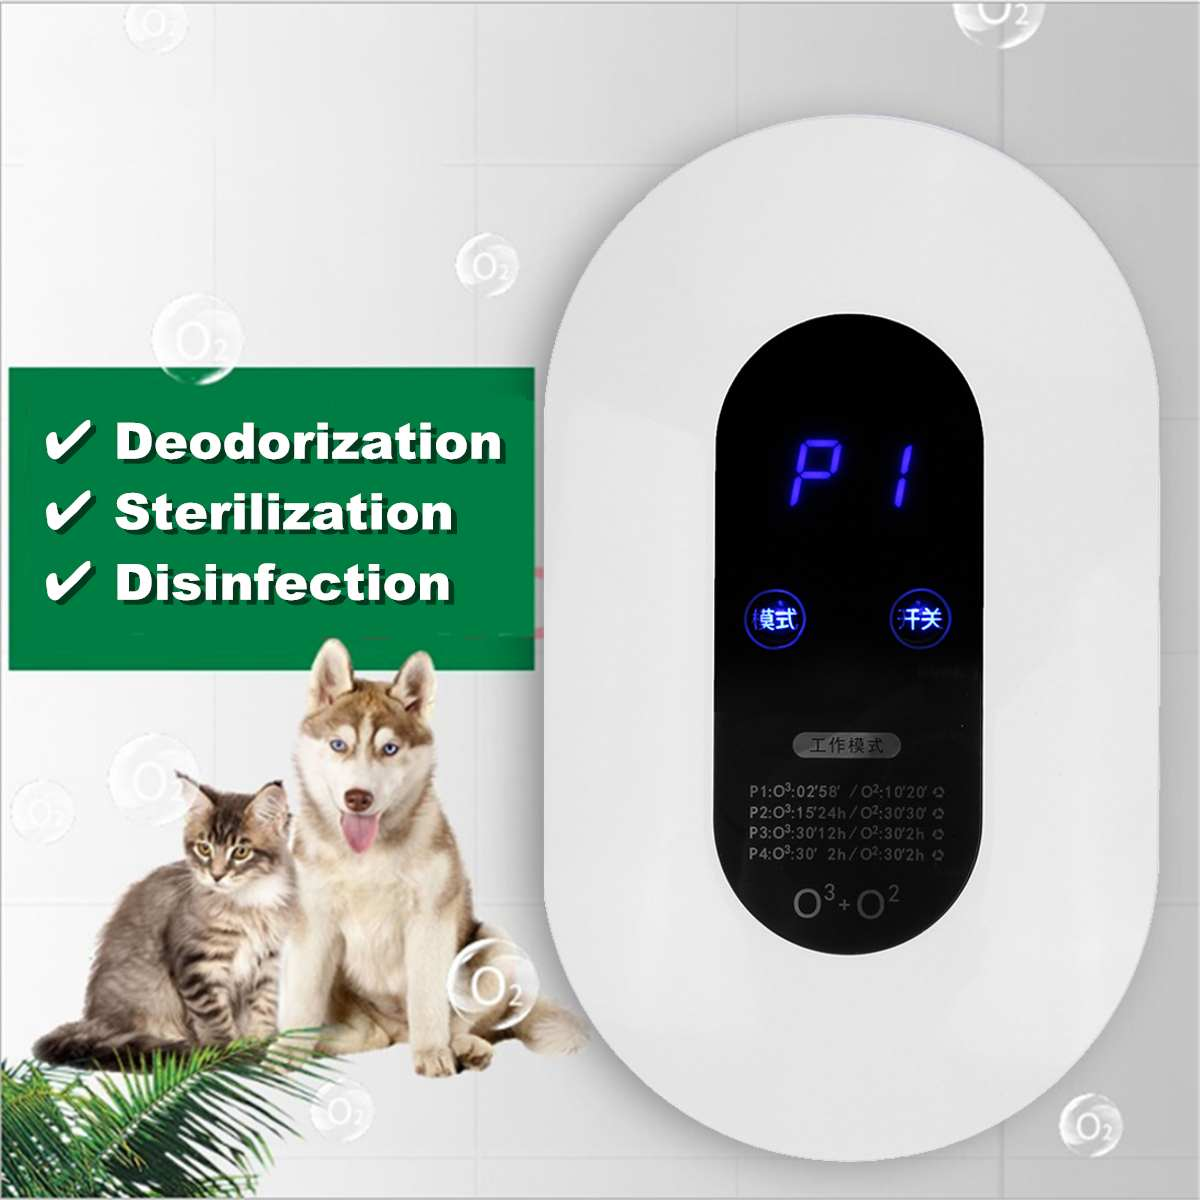 Ozone Generator Air-Purifier Remove Formaldehyde Smoke Dust Purification Home Room Ionizer Purifier Air Cleaner Oil-Diffuser